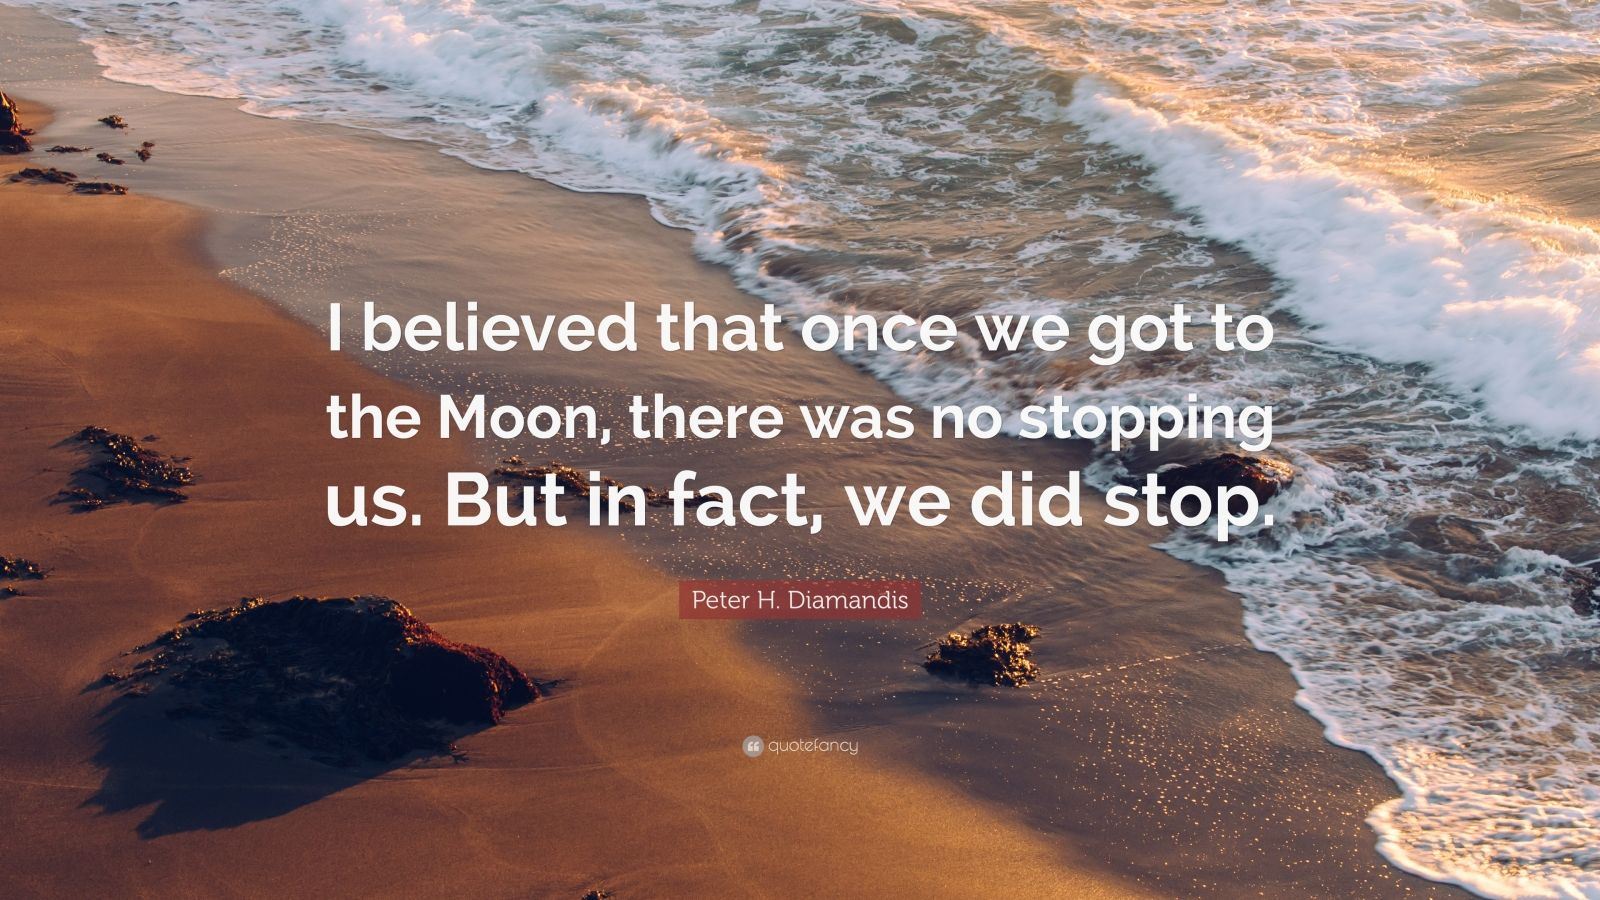 """Peter H. Diamandis Quote: """"I believed that once we got to the Moon, there was no stopping us. But in fact, we did stop."""""""